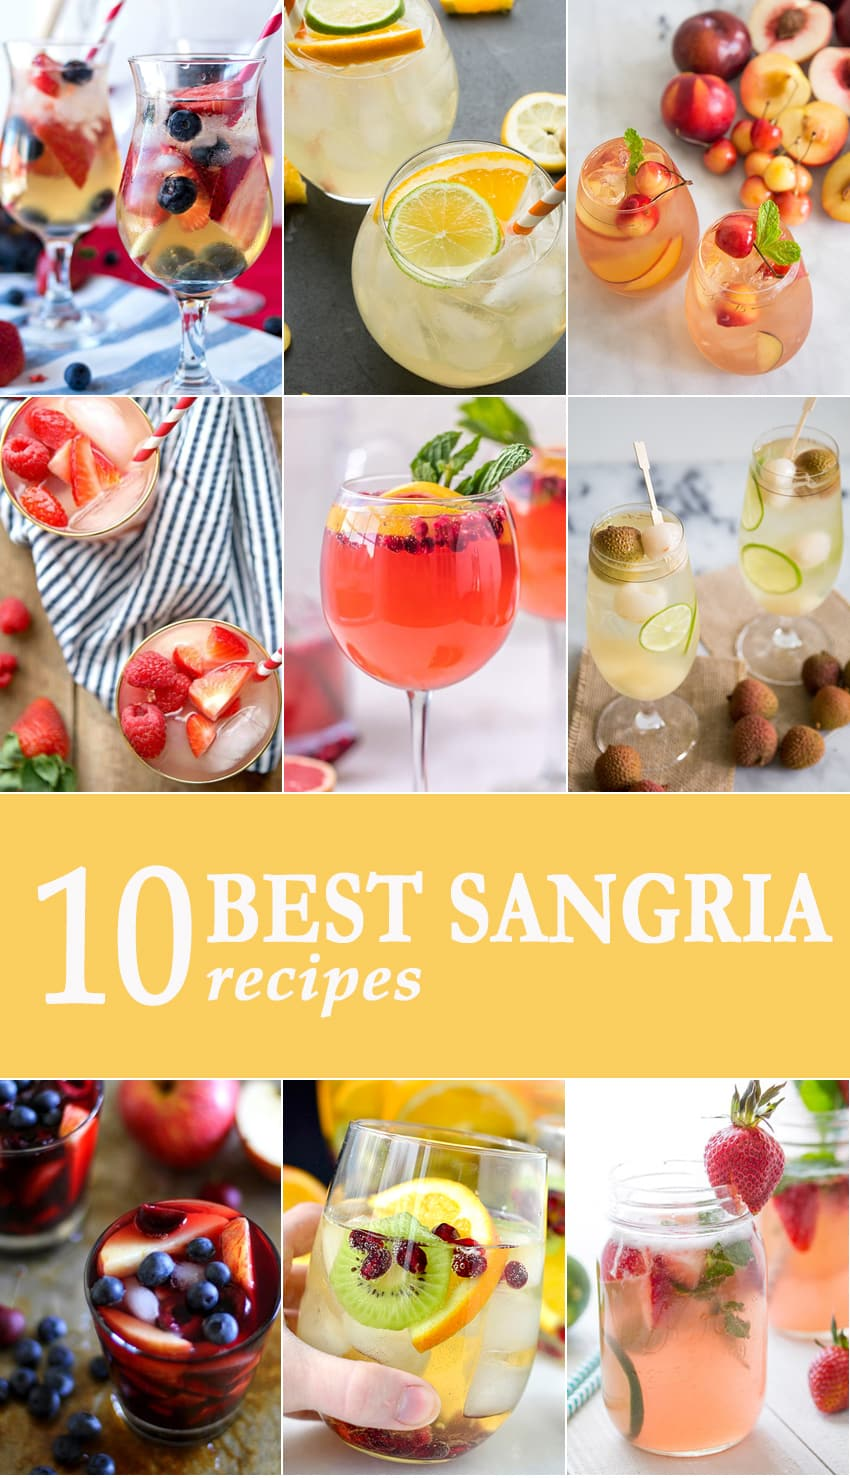 10 Best Sangria Recipes